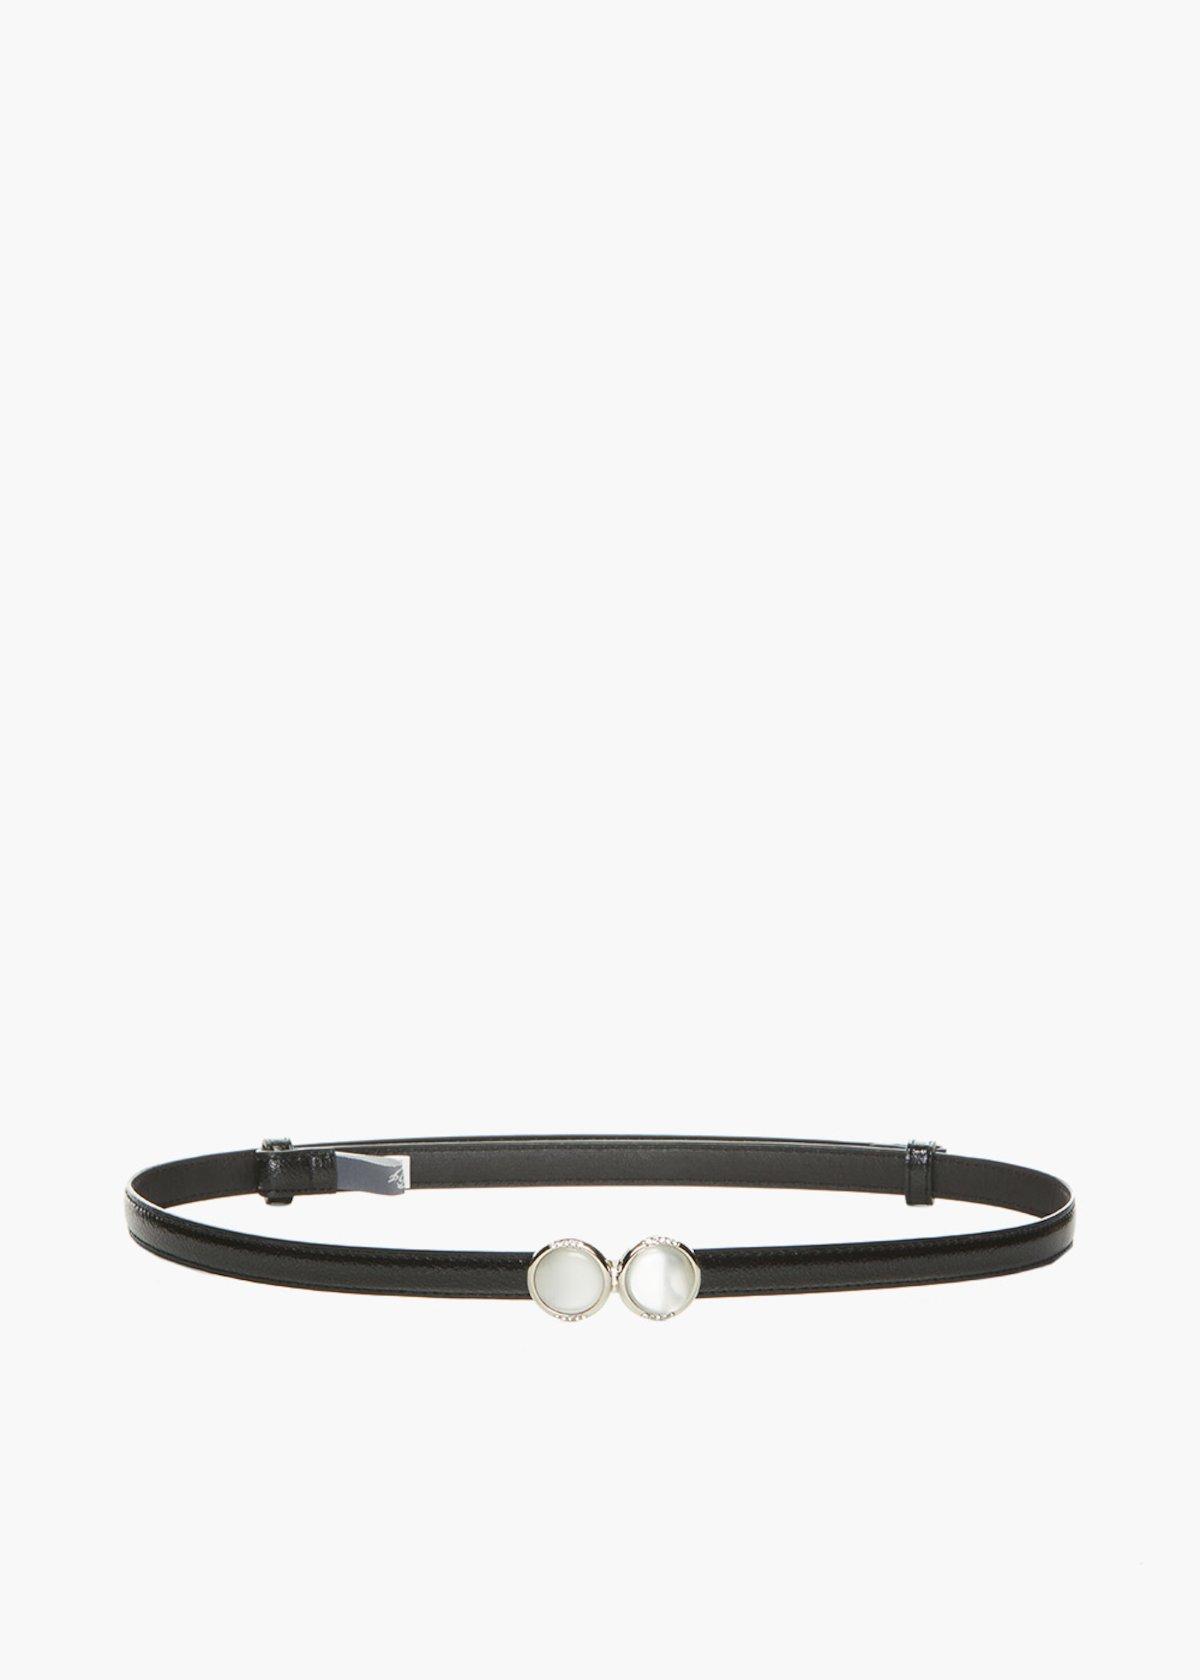 Faux leather Chiacy belt deer print and pearls fastening